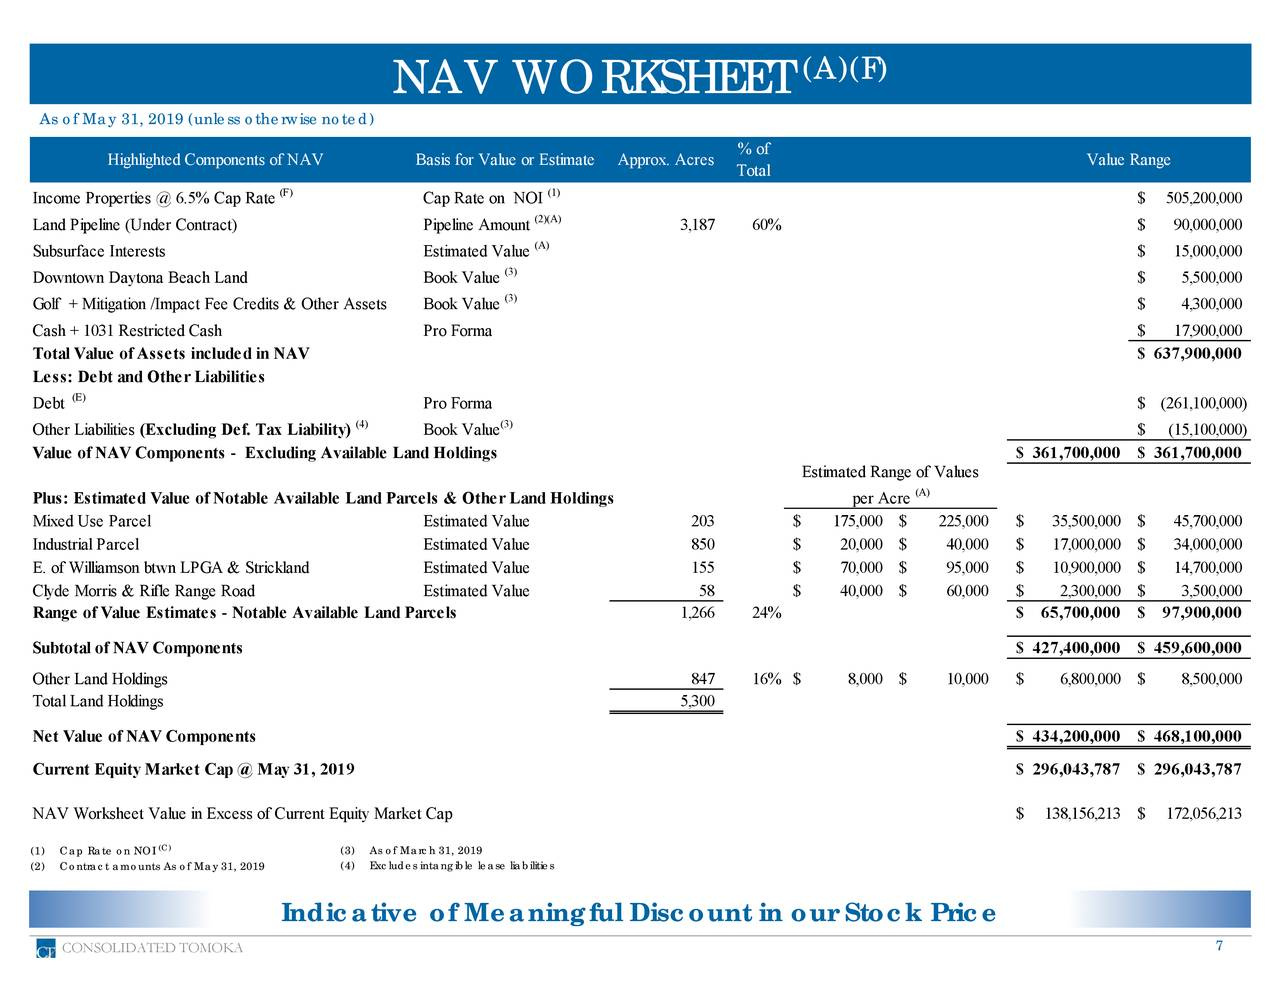 NAV WORKSHEET As of May 31, 2019 (unless otherwisenoted) Highlighted Components of NAV Basis for Value or Estimate Approx. Acres % of Value Range Total (F) (1) Income Properties @ 6.5% Cap Rate Cap Rate on NOI $ 505,200,000 (2)(A) Land Pipeline (Under Contract) Pipeline Amount 3,187 60% $ 90,000,000 Subsurface Interests Estimated Value(A) $ 15,000,000 Downtown Daytona Beach Land Book Value (3) $ 5,500,000 (3) Golf + Mitigation /Impact Fee Credits & Other Assets Book Value $ 4,300,000 Cash + 1031 Restricted Cash Pro Forma $ 17,900,000 Total Value of Assets included in NAV $ 637,900,000 Less: Debt and Other Liabilities Debt (E) Pro Forma $ (261,100,000) (4) (3) Other Liabilities (Excluding Def. Tax Liability) Book Value $ (15,100,000) Value of NAV Components - Excluding Available Land Holdings $ 361,700,000 $ 361,700,000 Estimated Range of Values Plus: Estimated Value of Notable Available Land Parcels & Other Land Holdings per Acre (A) Mixed Use Parcel Estimated Value 203 $ 175,000 $ 225,000 $ 35,500,000 $ 45,700,000 IndustrialParcel Estimated Value 850 $ 20,000 $ 40,000 $ 17,000,000 $ 34,000,000 E. of Williamson btwn LPGA & Strickland Estimated Value 155 $ 70,000 $ 95,000 $ 10,900,000 $ 14,700,000 Clyde Morris & Rifle Range Road Estimated Value 58 $ 40,000 $ 60,000 $ 2,300,000 $ 3,500,000 Range of Value Estimates - Notable Available Land Parcels 1,266 24% $ 65,700,000 $ 97,900,000 Subtotal of NAV Components $ 427,400,000 $ 459,600,000 Other Land Holdings 847 16% $ 8,000 $ 10,000 $ 6,800,000 $ 8,500,000 TotalLand Holdings 5,300 Net Value of NAV Components $ 434,200,000 $ 468,100,000 Current Equity Market Cap @ May 31, 2019 $ 296,043,787 $ 296,043,787 NAV Worksheet Value in Excess of Current Equity Market Cap $ 138,156,213 $ 172,056,213 (1) Cap Rate on NOIC) (3) As of March 31, 2019 (2) Contract amounts As of May 31, 2019 (4) Excludes intangible lease liabilities Indicative of Meaningful Discount in our Stock Price CONSOLIDATED TOMOKA 7